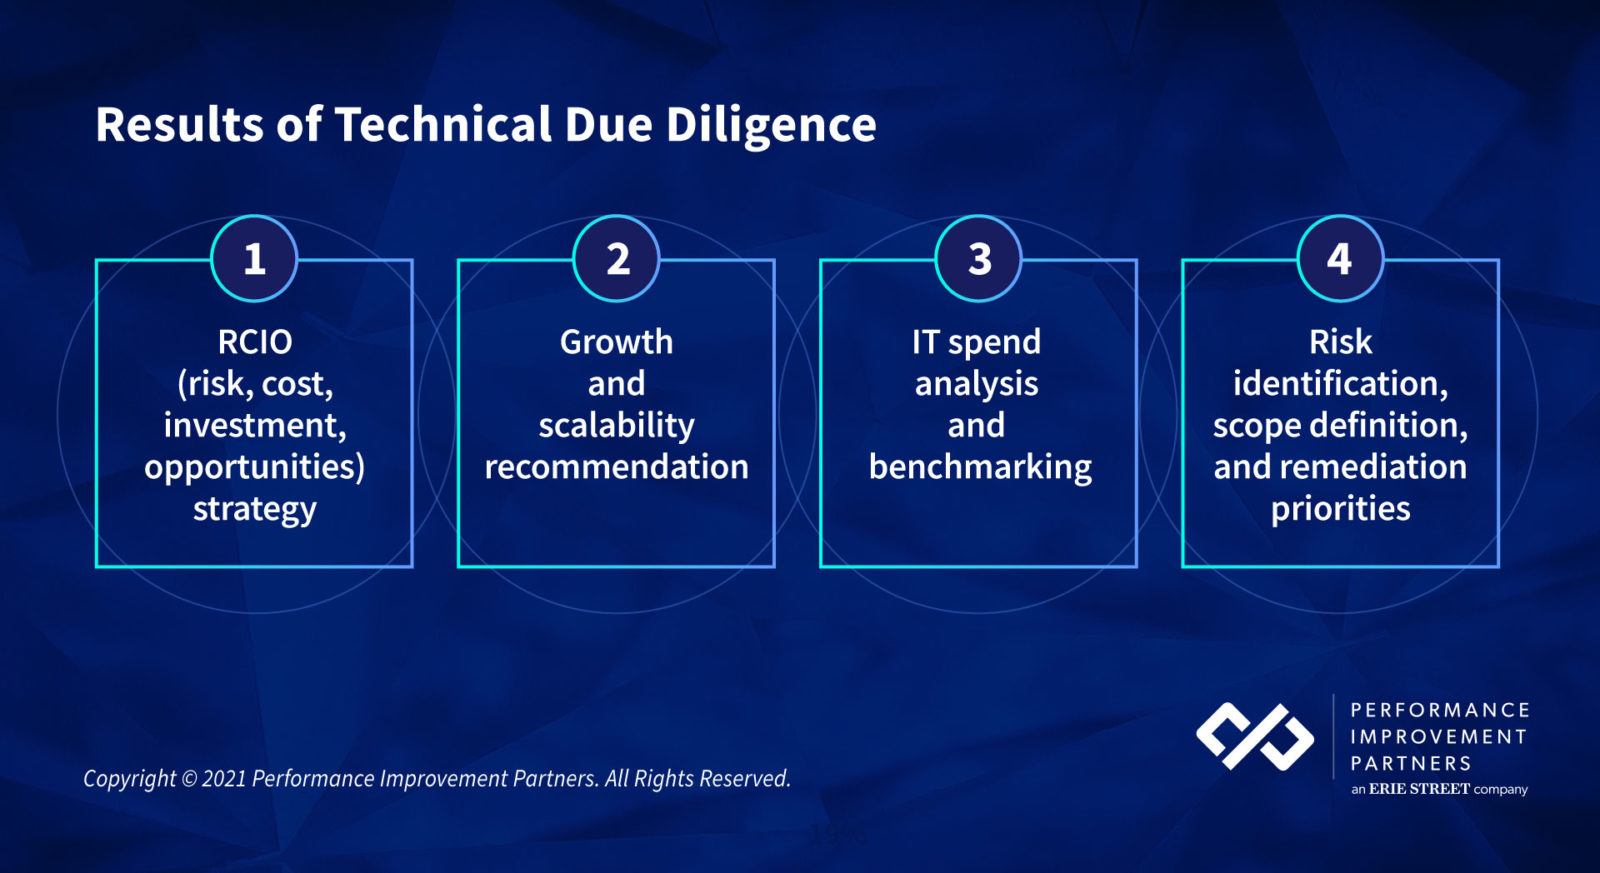 technical-due-diligence-checklist-results